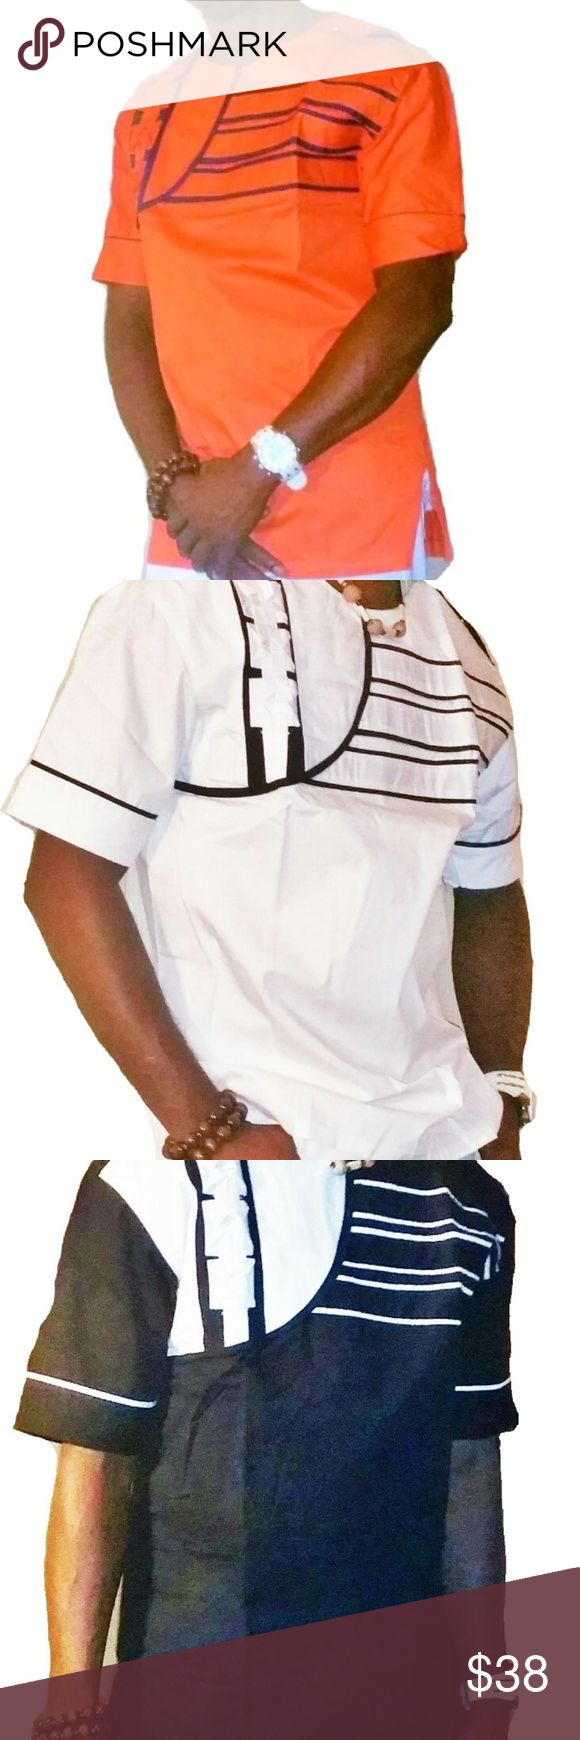 African mens clothing dashiki This is a classic Men's short Sleeve African Traditional clothing finely and neatly sewn and it's made with high quality fabric. It has a perfect finish and it is ideal for any special occasion be it wedding ceremony, church service, party, outdooring etc.This costume can also be a perfect gift option to a love one. African clothing dashiki Shirts Casual Button Down Shirts